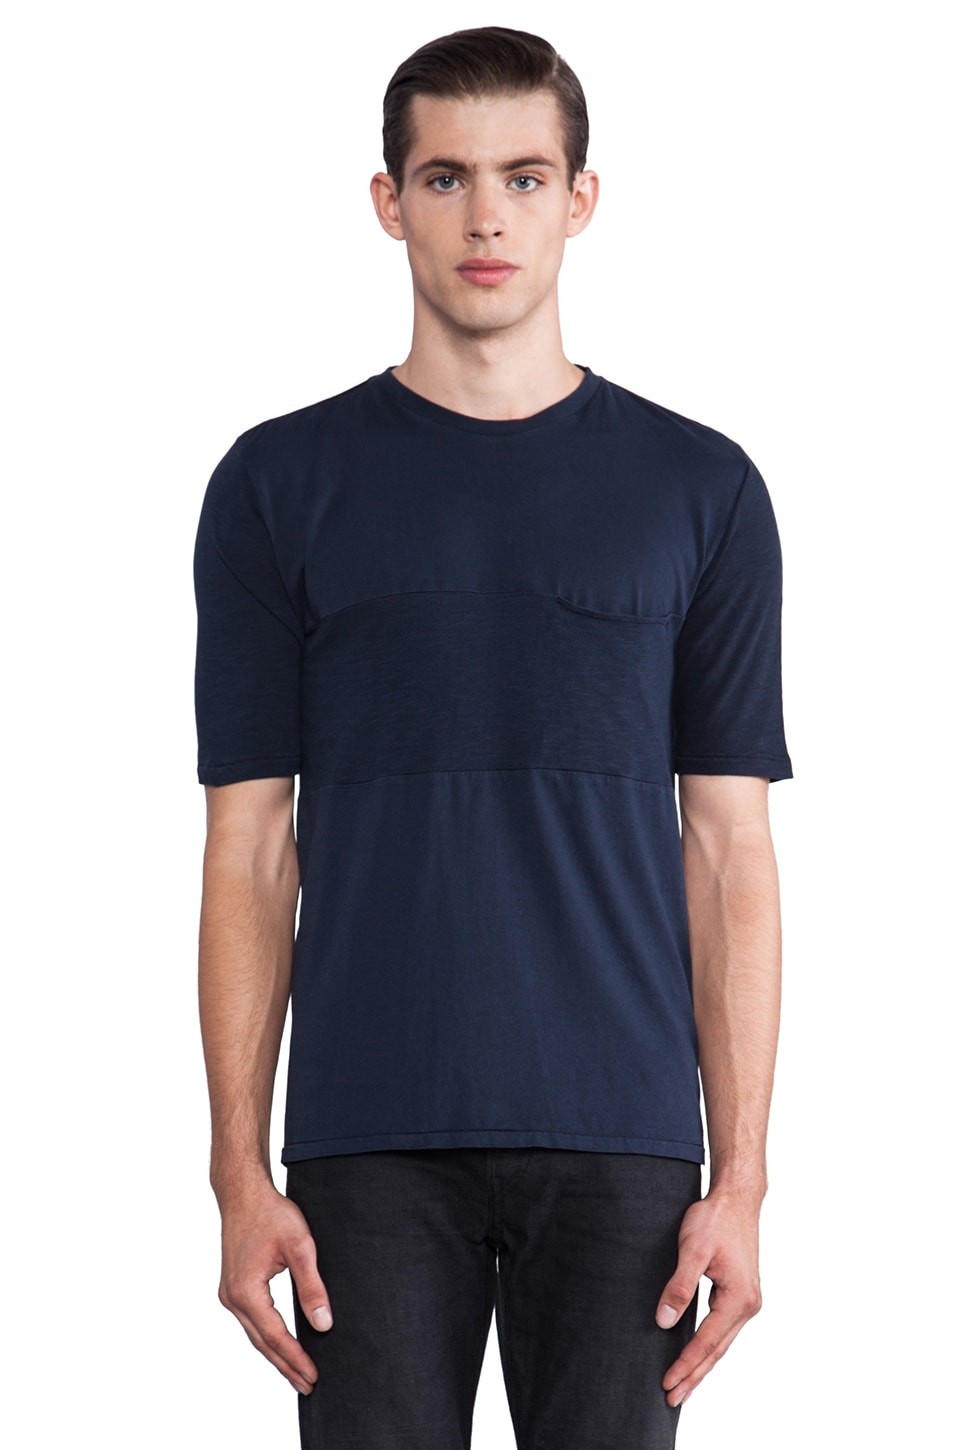 Natural Selection Denim Revenge Tee in Navy